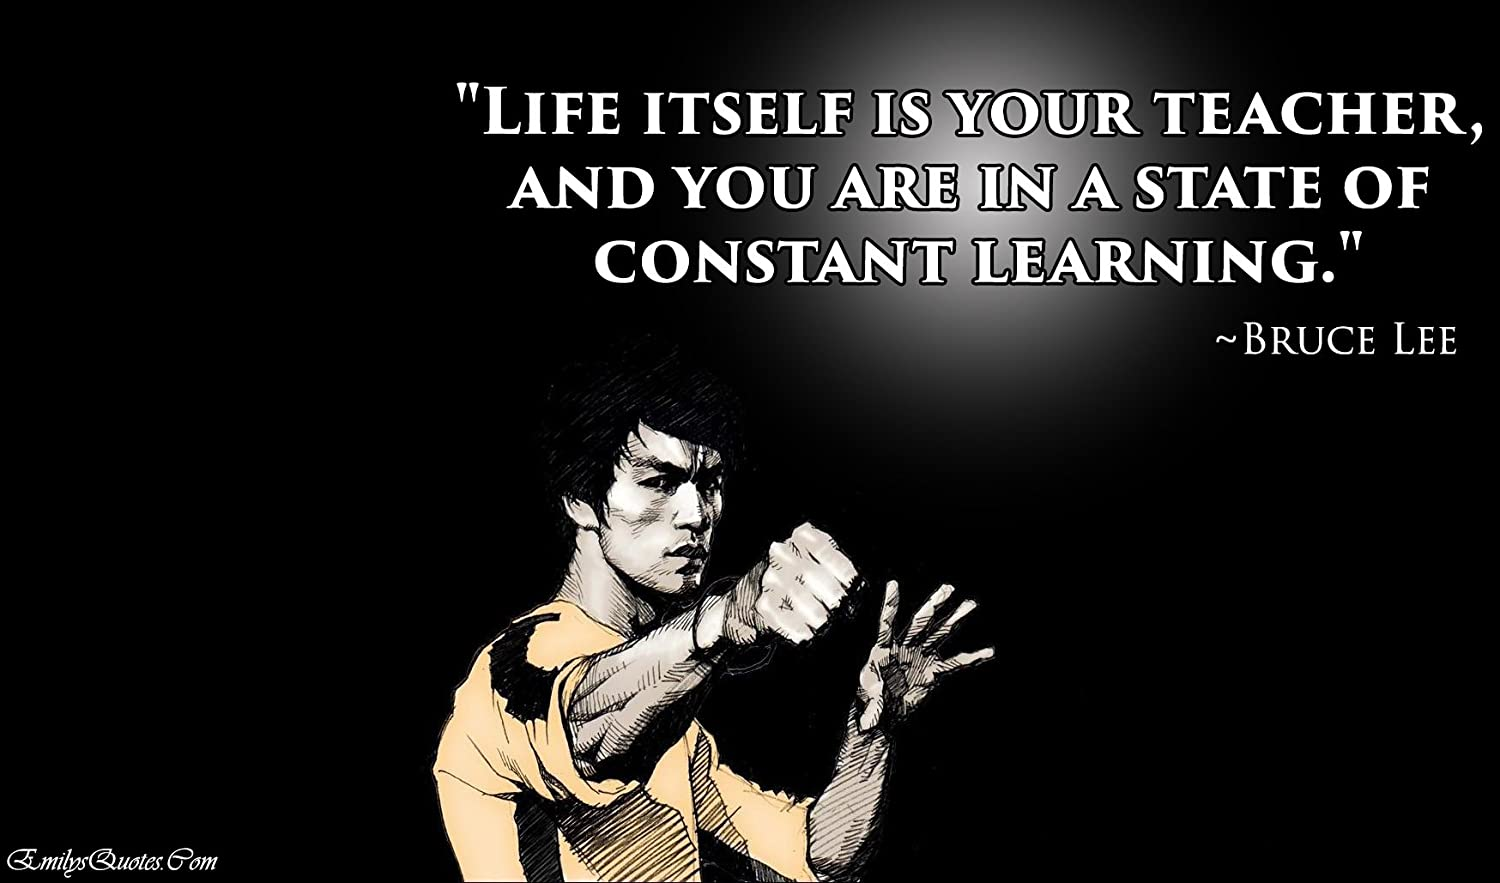 Amazon Com Life Itself Is Your Teacher Bruce Lee Quotes Poster